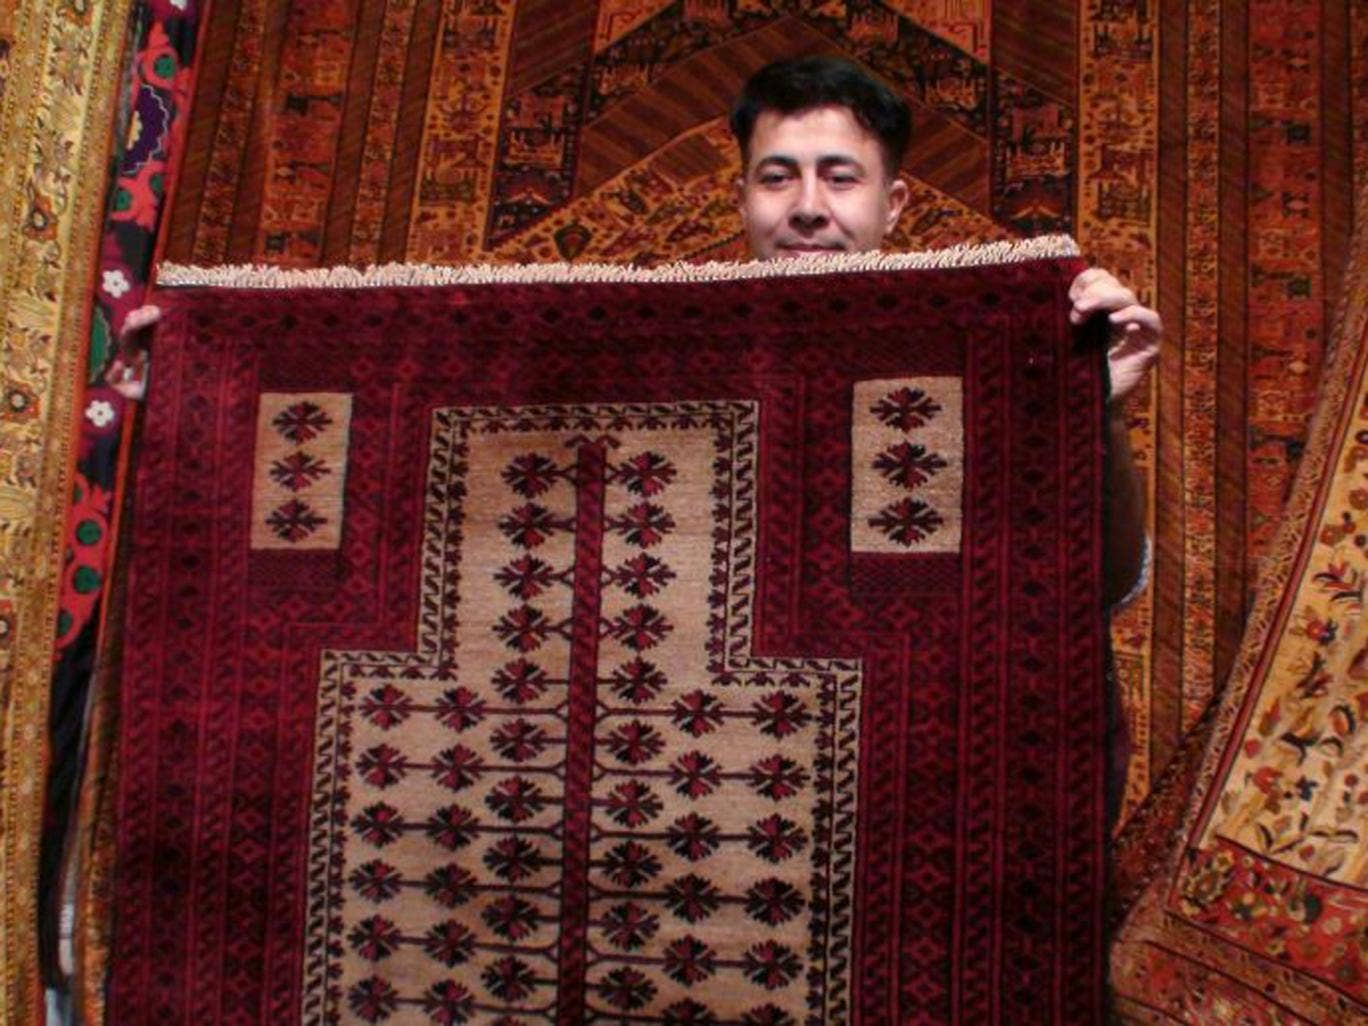 Millions of hand-woven rugs are turned out in Tehran but machine-made alternatives are  beginning to outsell them